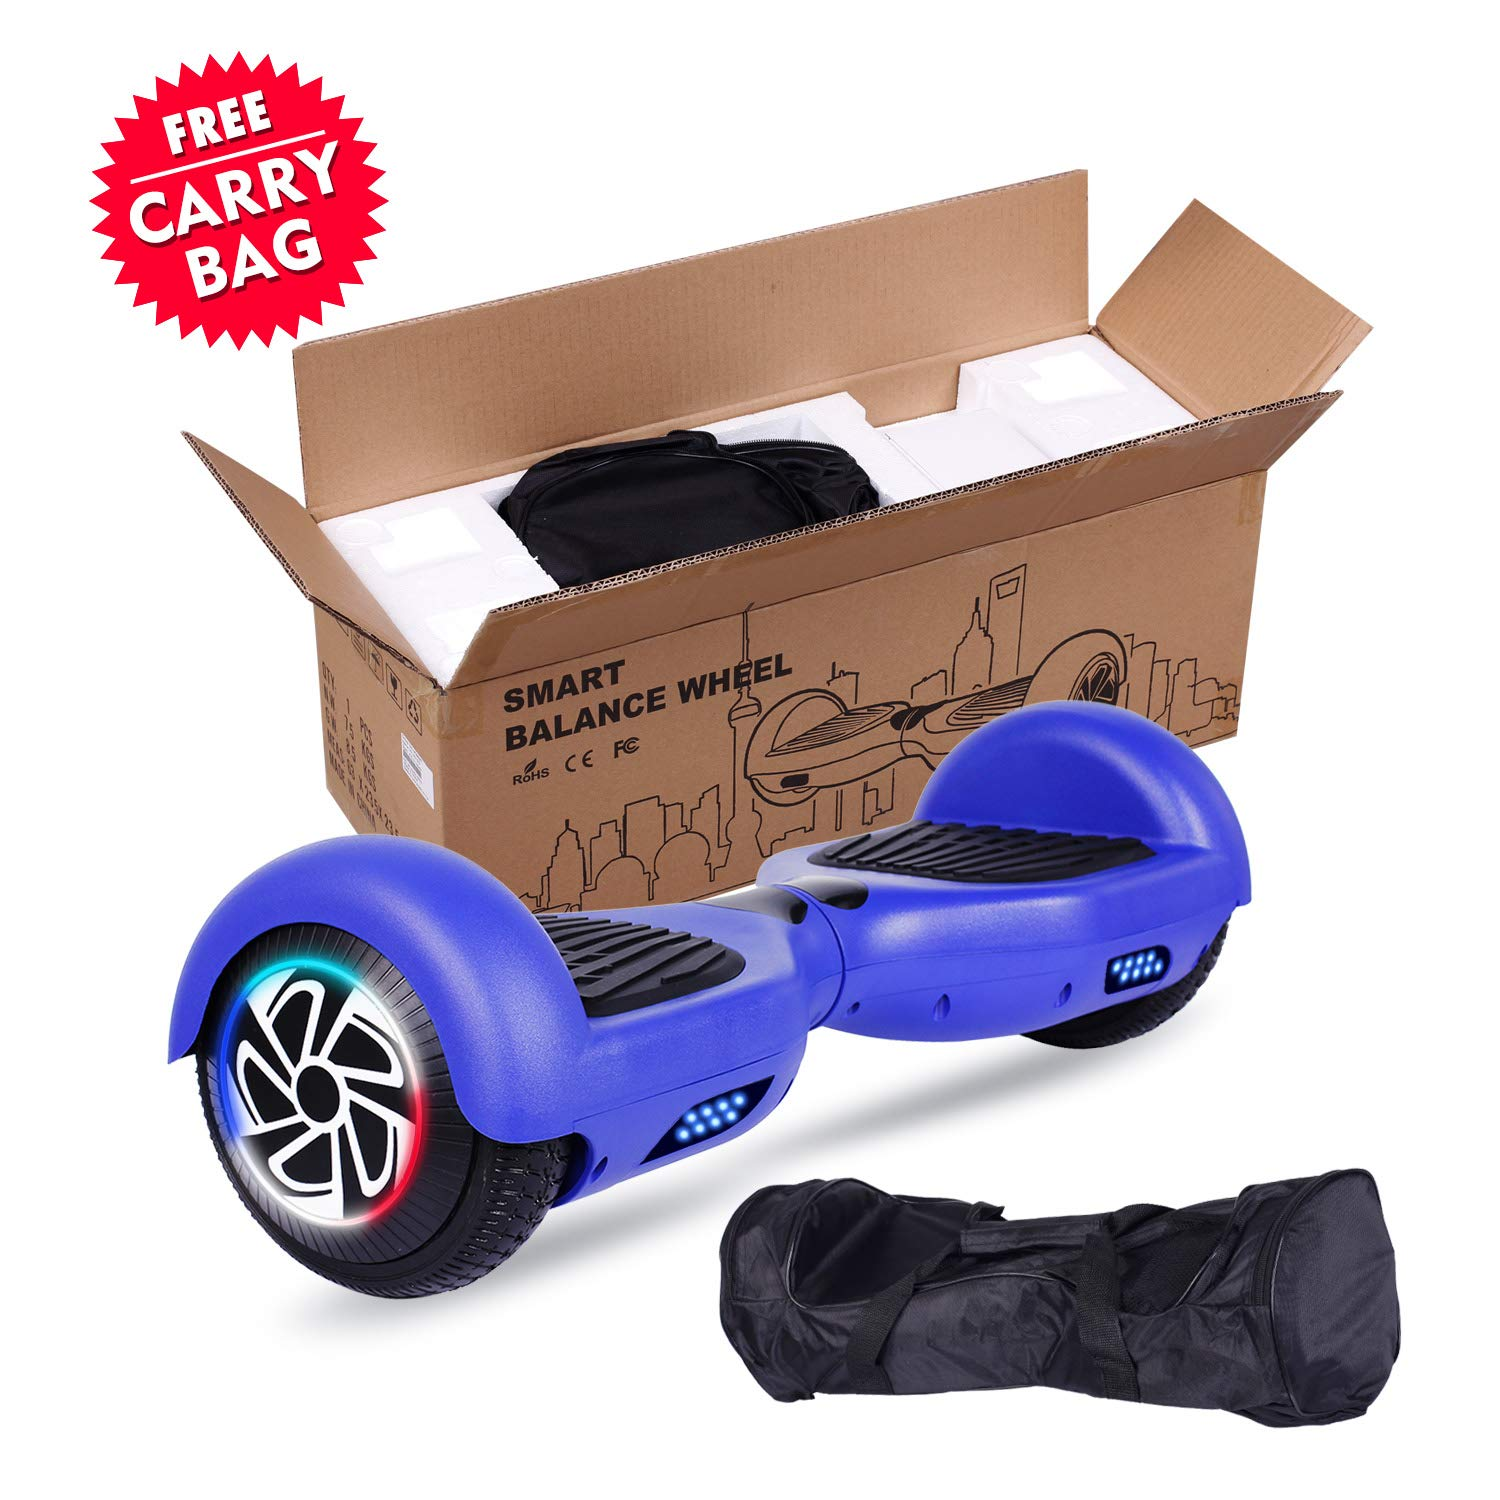 SISIGAD Hoverboard, Self Balancing Hoverboard, 6.5'' Two-Wheel Self Balancing Scooter, Smart Hover Board for Kids Gift, Adult Electric Scooter, with LED Lights and Free Carrying Bag UL2272 Certified by SISIGAD (Image #7)